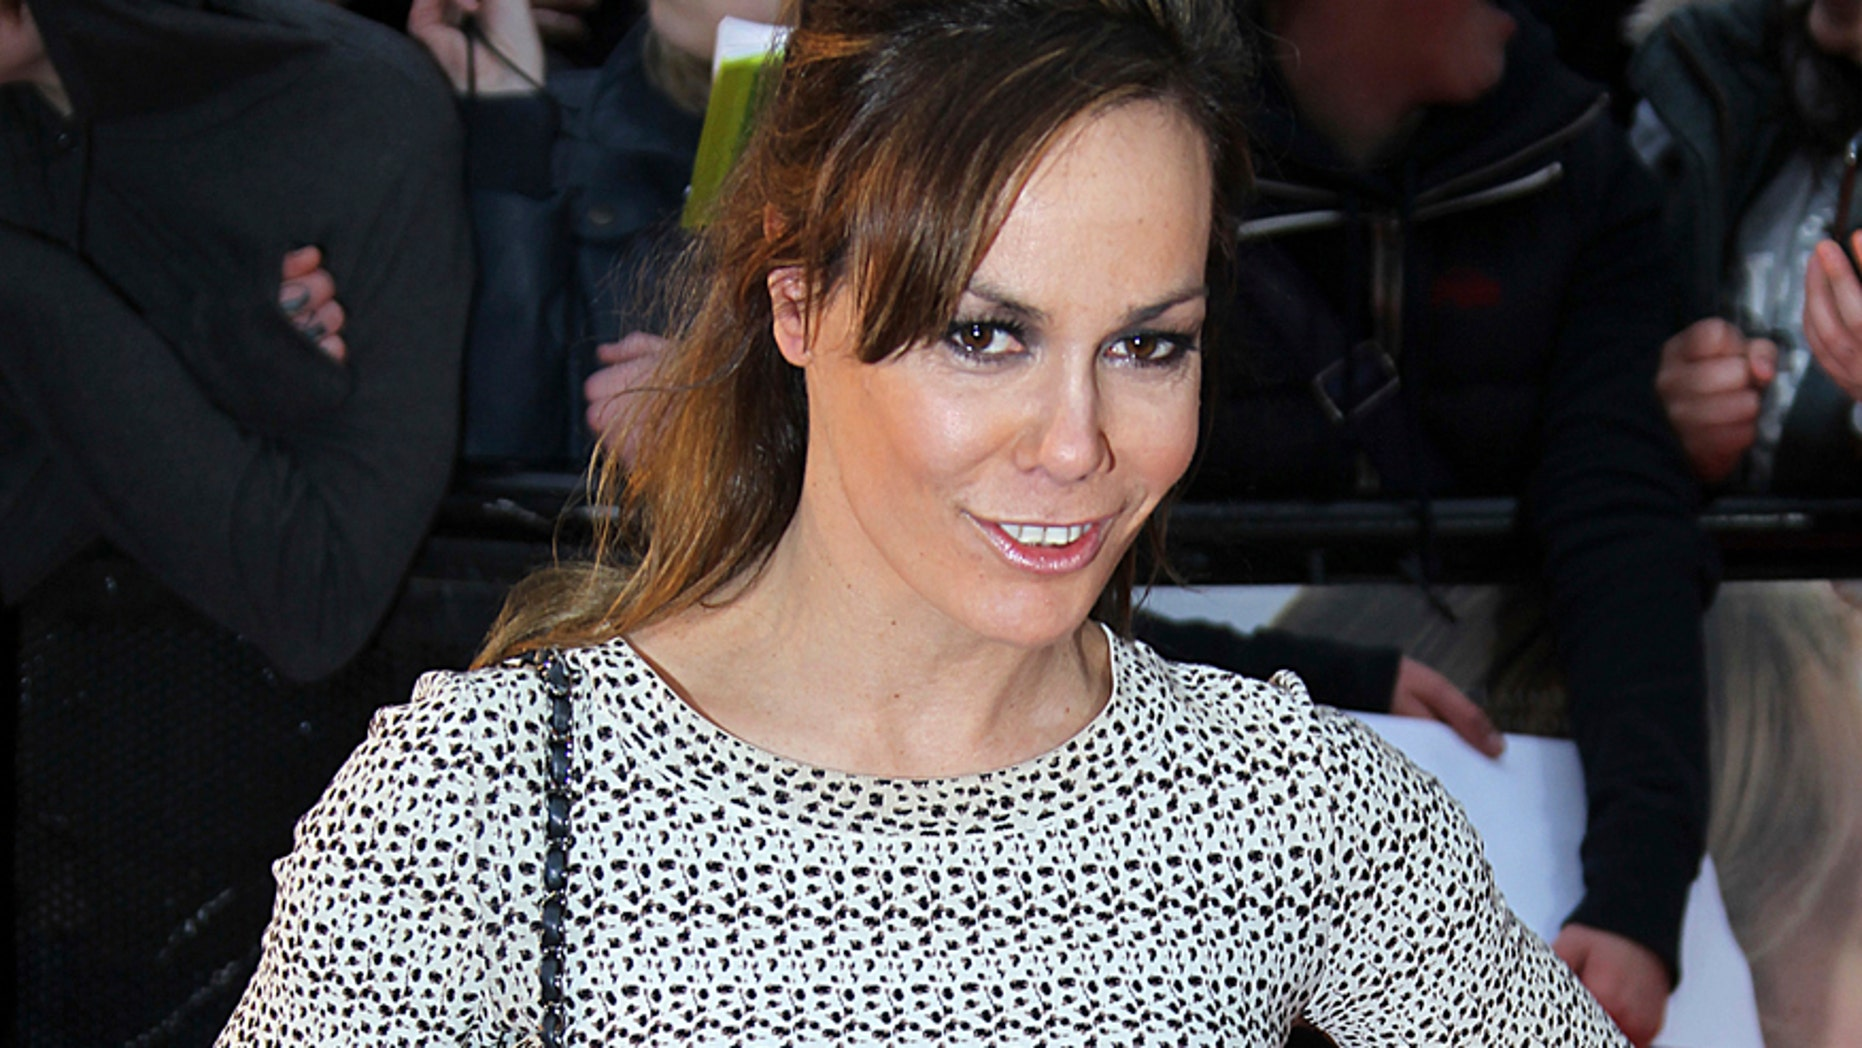 A Monday, April 23, 2012 file photo of British socialite and goddaughter of Britain's Prince Charles, Tara Palmer-Tomkinson arriving for the European Premiere of 'The Lucky One' at the Bluebird restaurant in London.